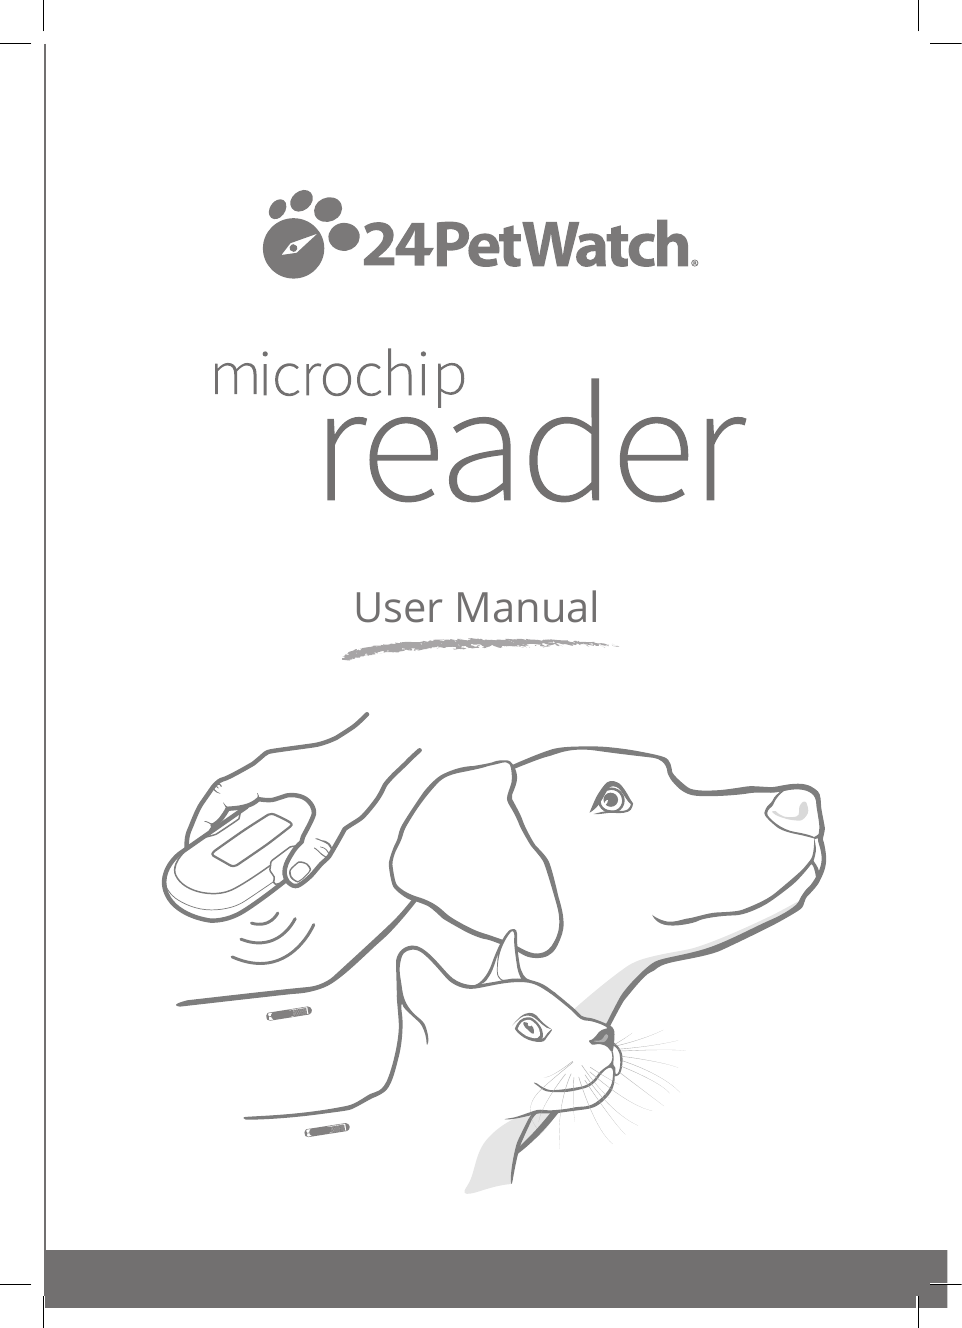 HRUNI 01099-EU_02 24PetWatch Microchip Reader Manual_Pages